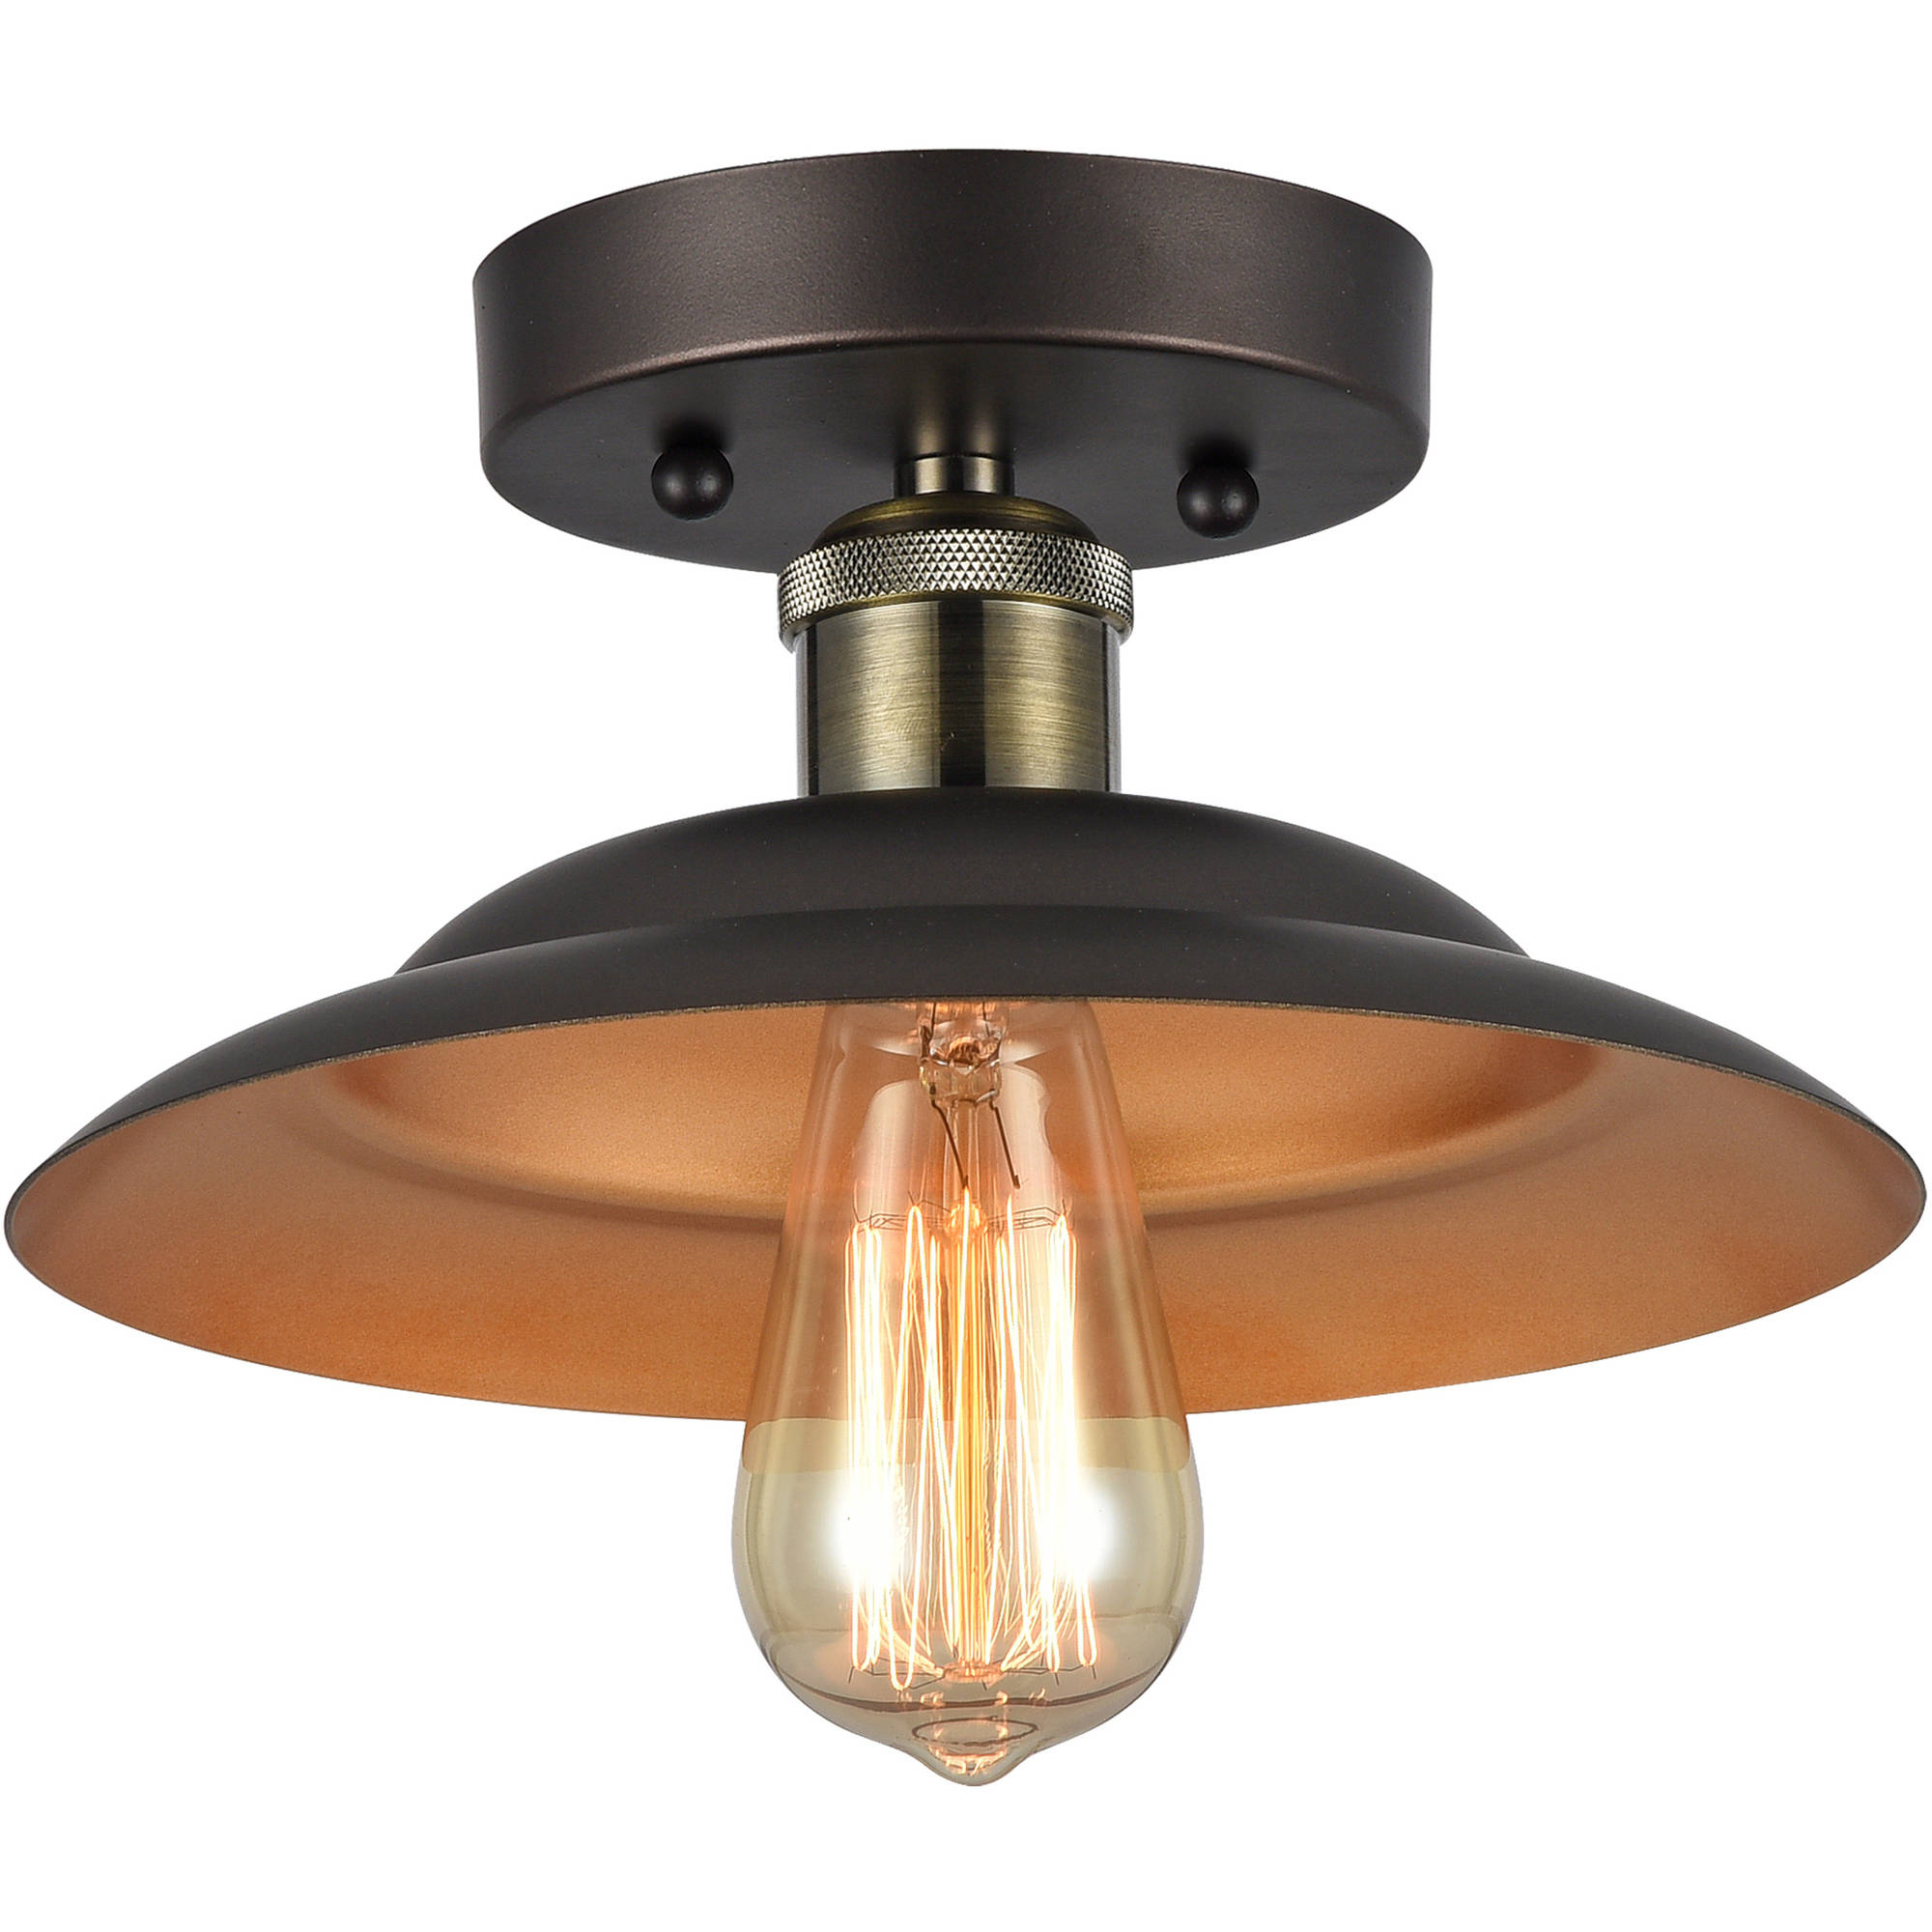 "Chloe Lighting Ironclad Industrial-Style 1-Light Rubbed Bronze Semi-Flush Ceiling Fixture with 10"" Shade by Chloe Lighting"